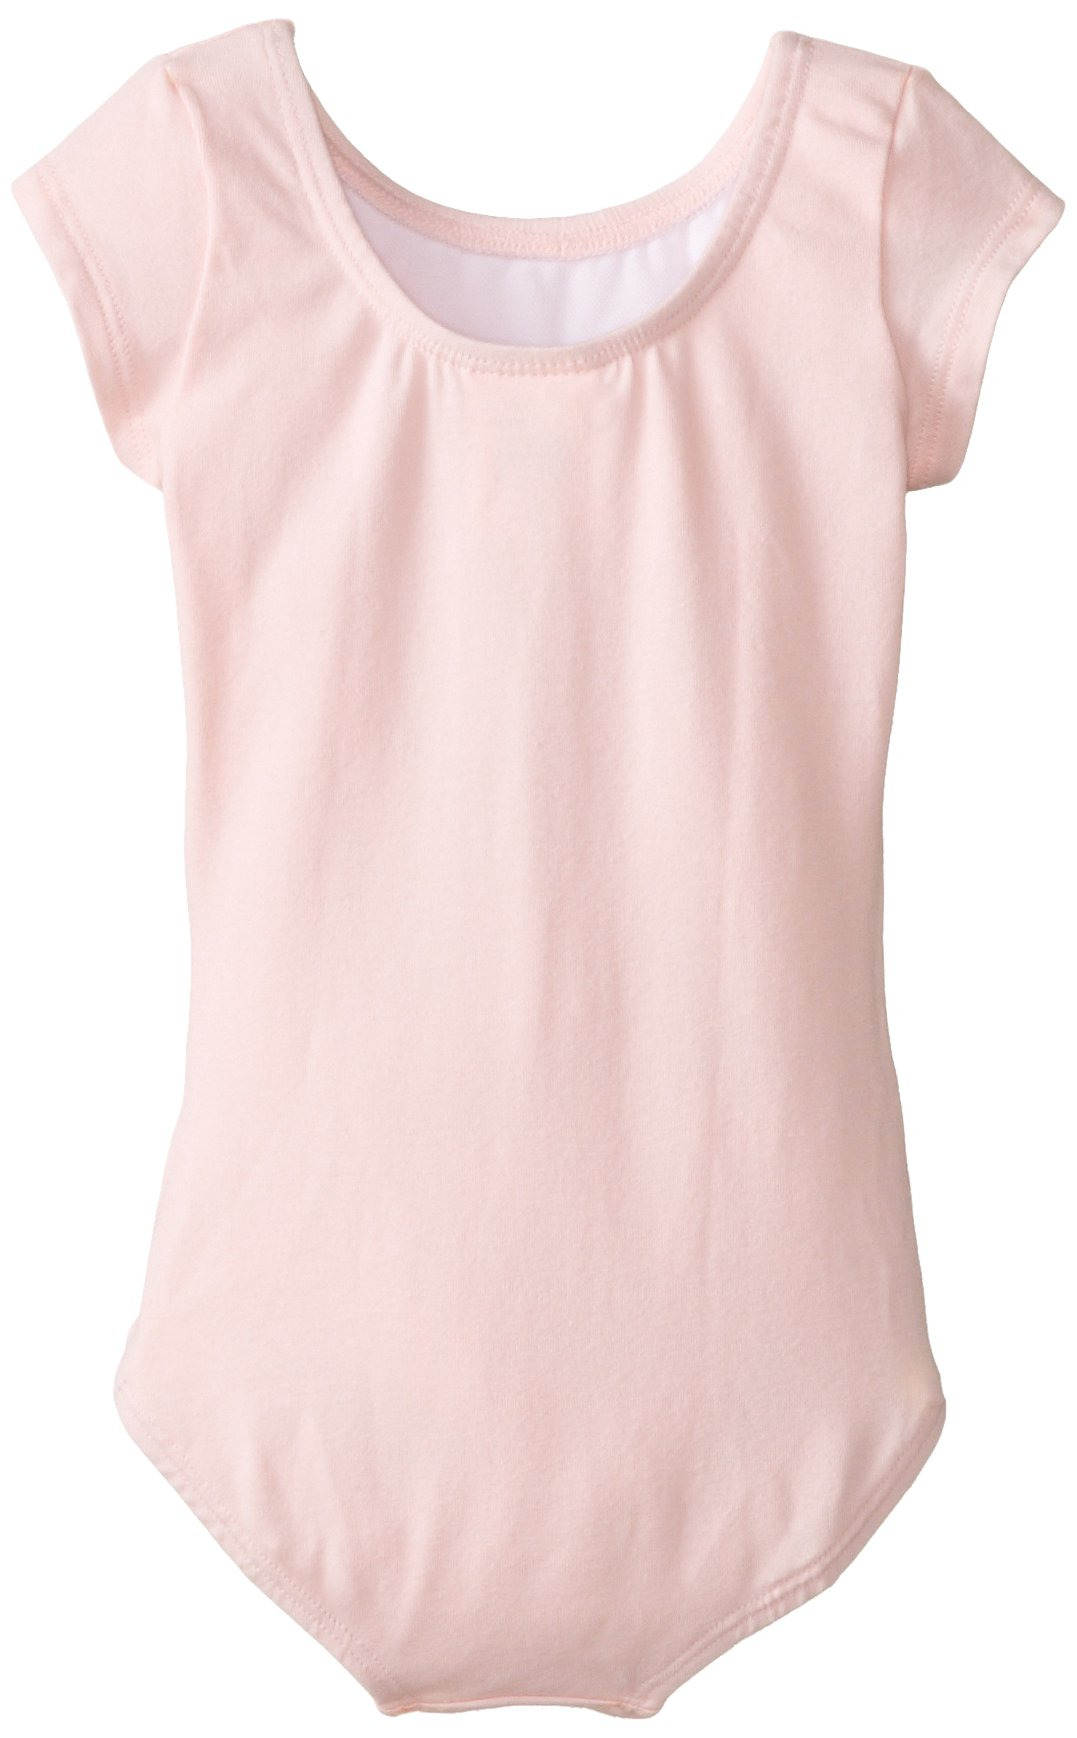 Clementine Girl's 2-6X Short Sleave Leotard, Light Pink, 3-4 by Clementine Apparel (Image #2)